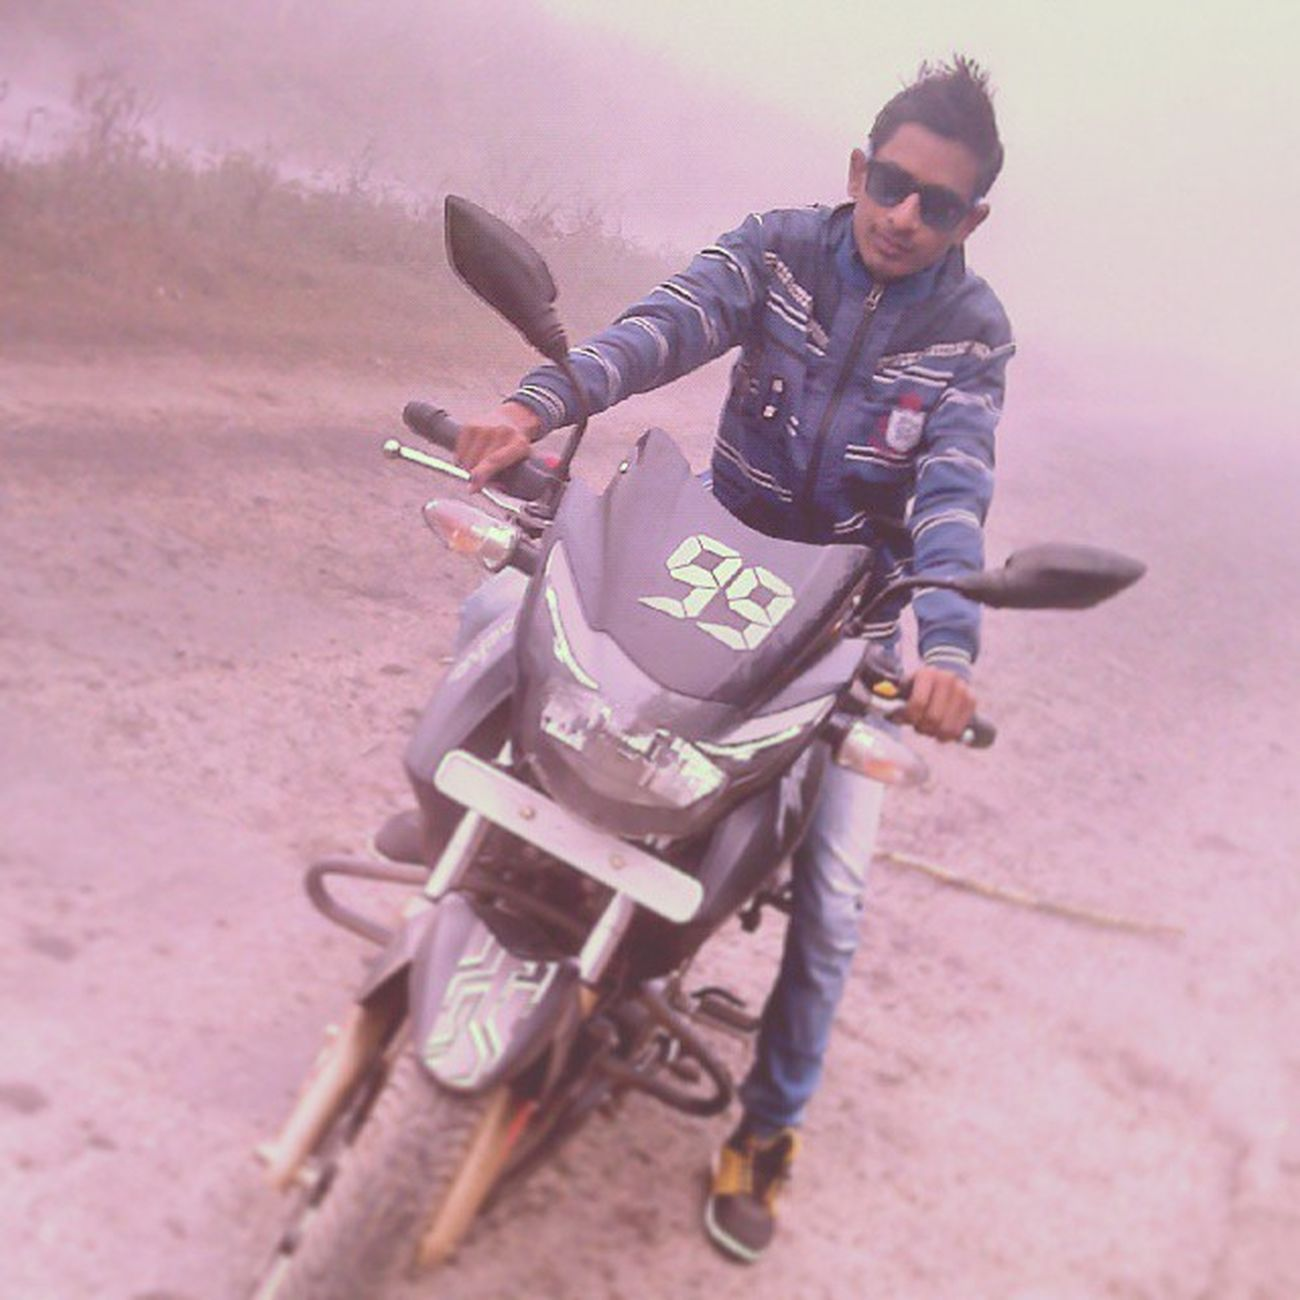 Riding Apache RTR99 StYlIsH_AtTiTuDe_ChOkRa Heart Hάςķέŕ Mя_яσςк❤